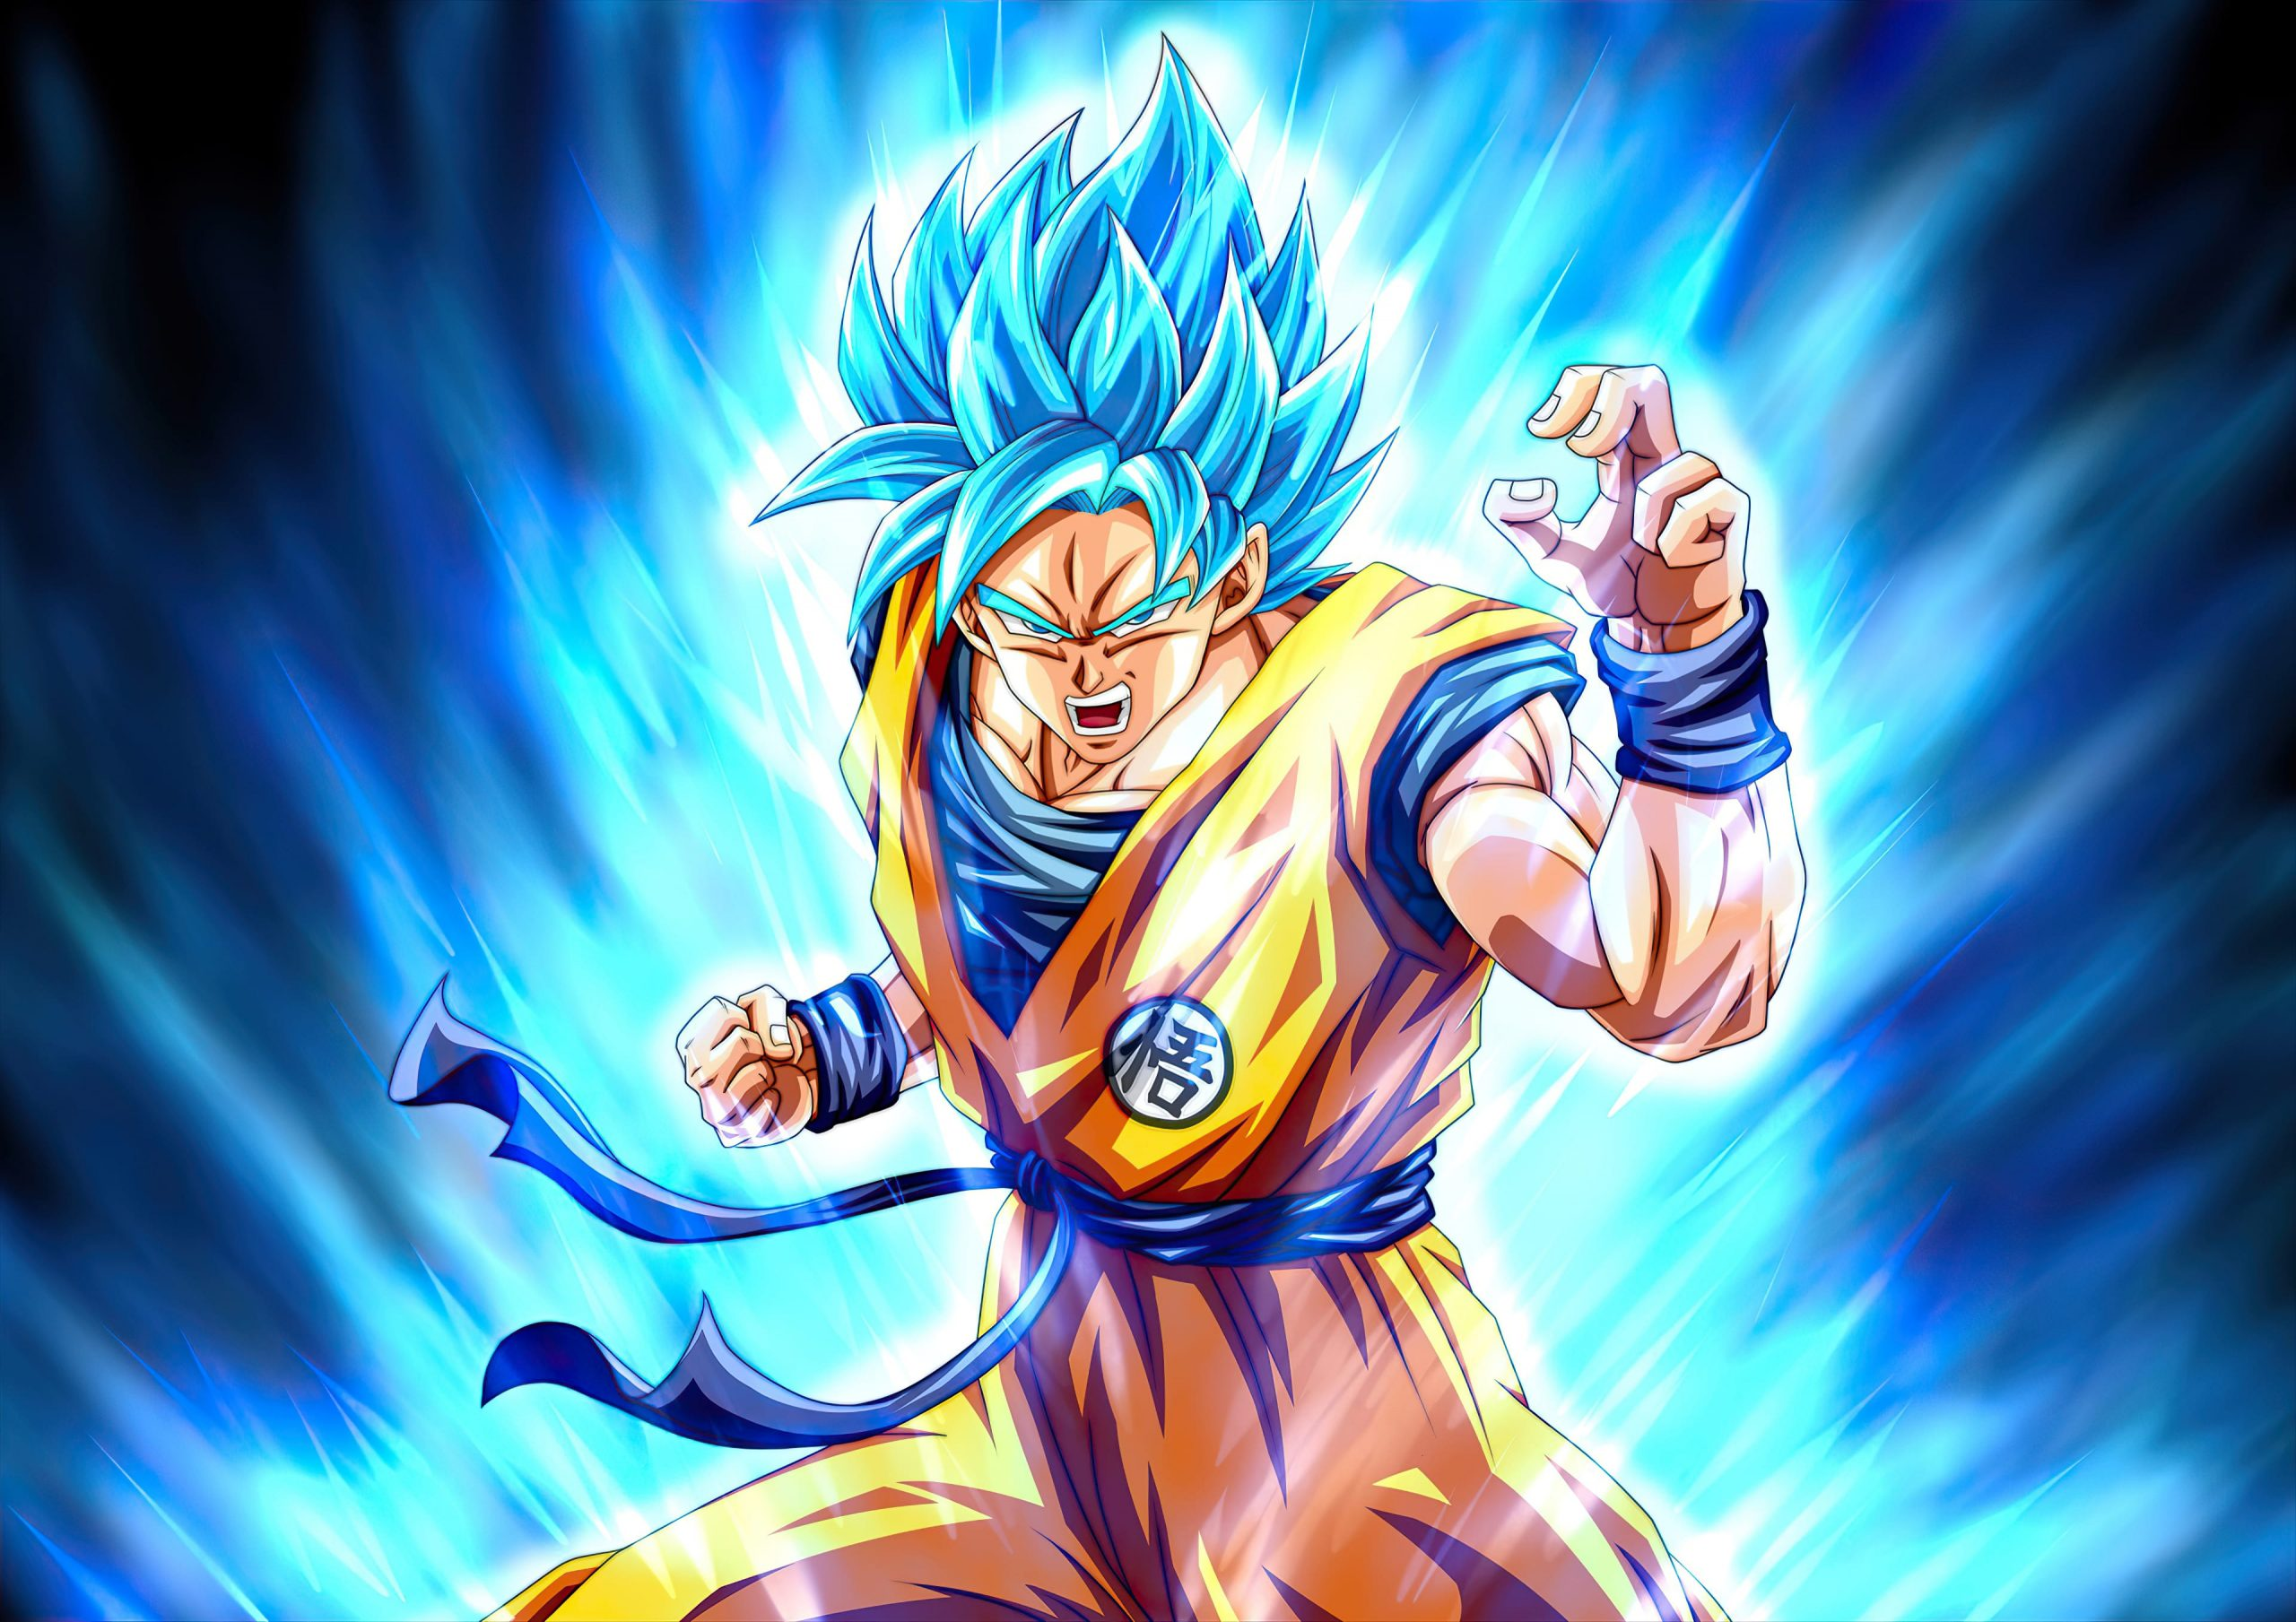 Goku 4k Wallpaper Nawpic